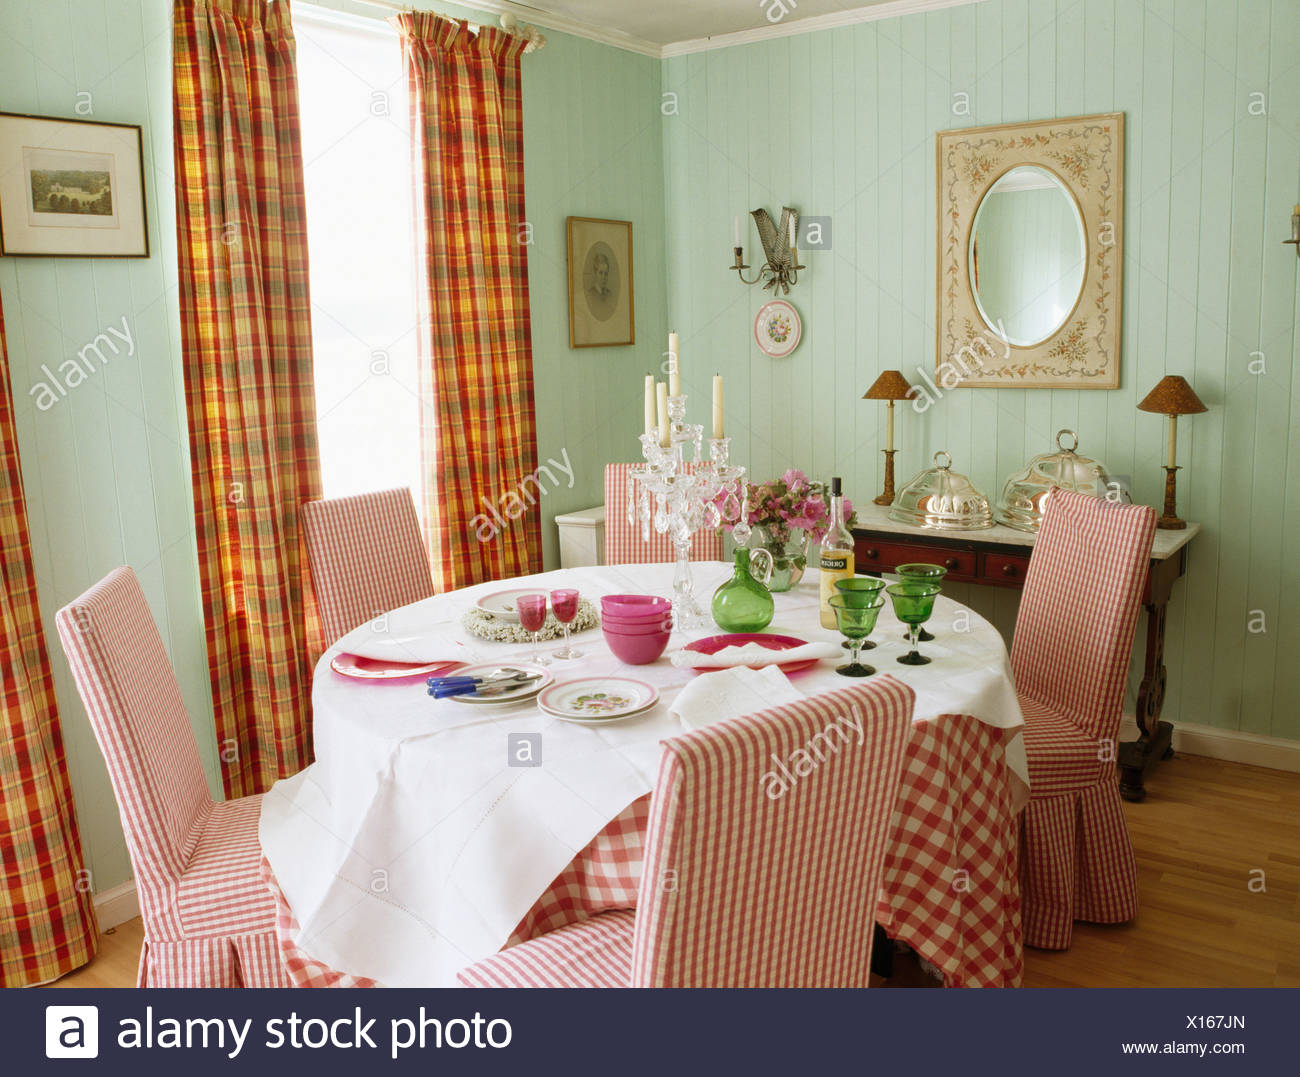 Red Checked Loose Covers On Chairs At Table With White Linen Cloth In Pale Green Dining Room With Orange Checked Curtains Stock Photo Alamy